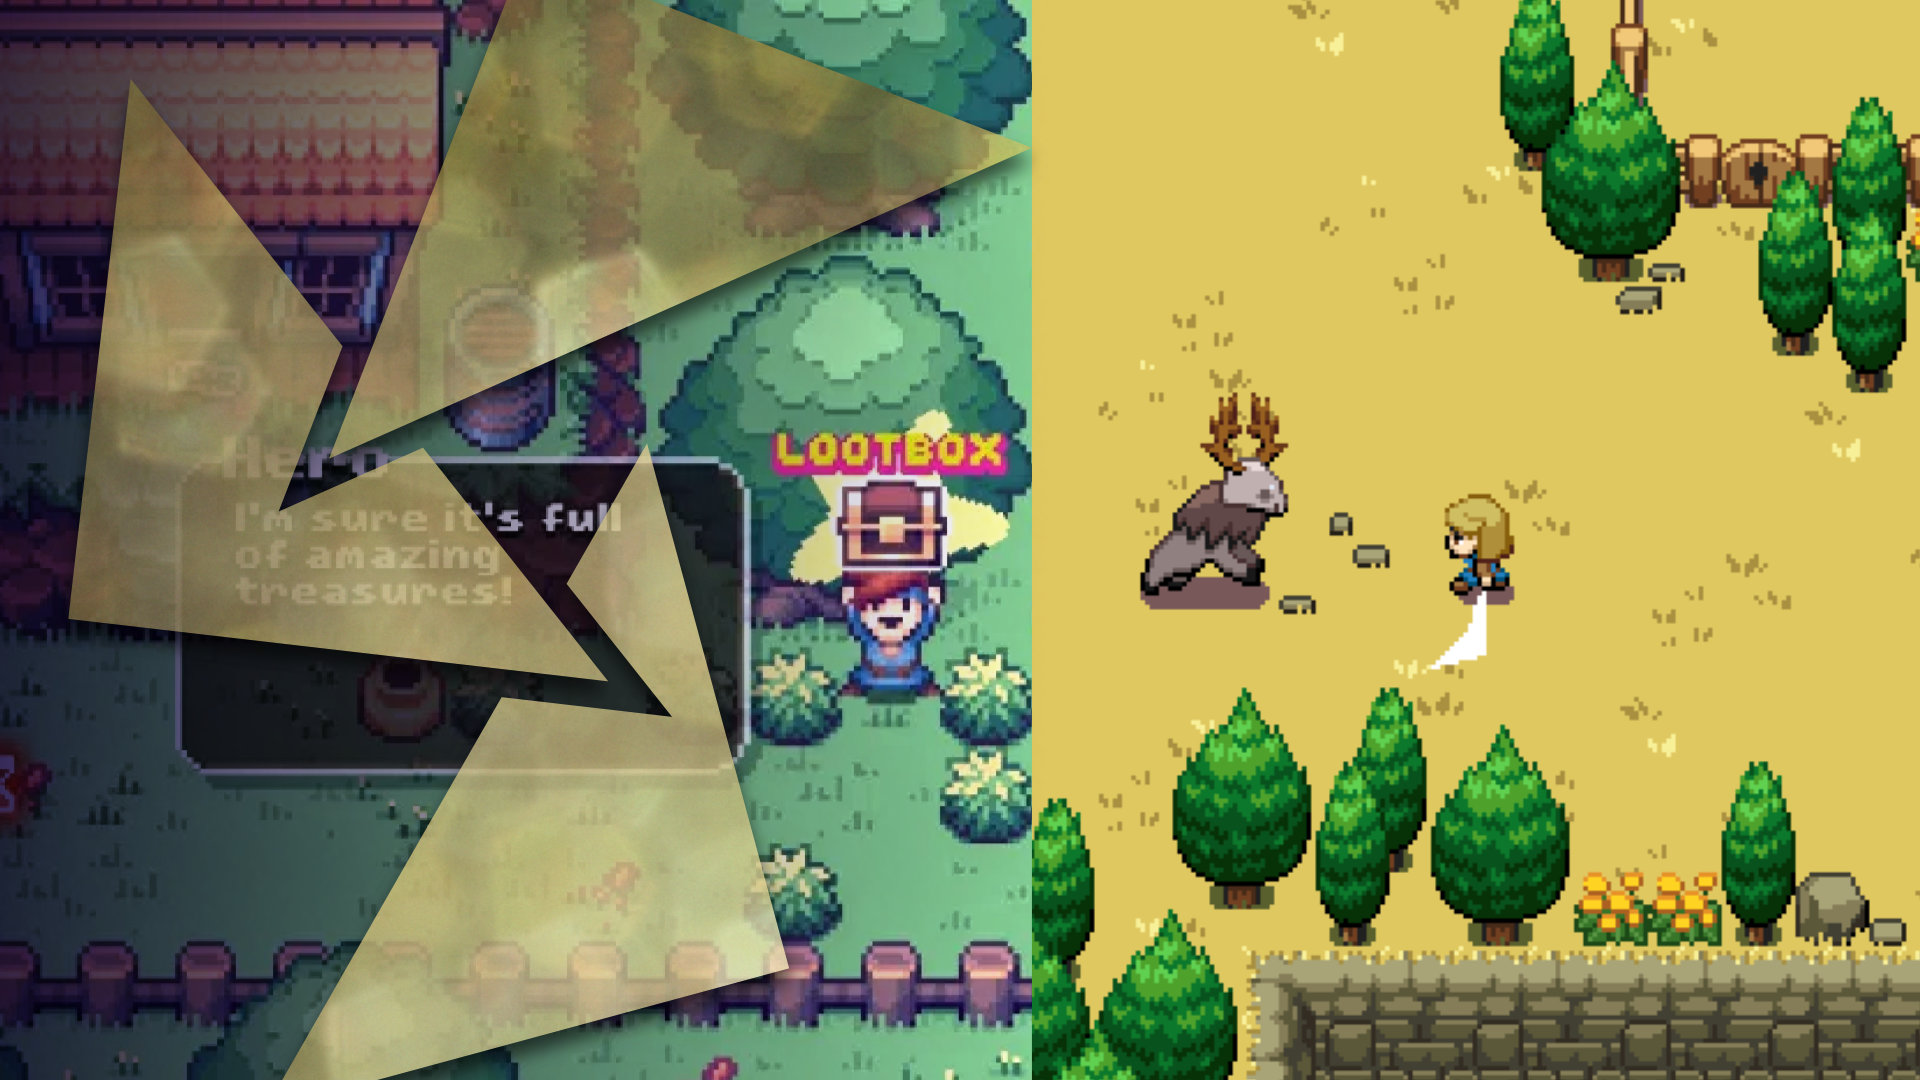 Two screenshots from different video games, one from There Is No Game: Wrong Dimension showing a boy holding a treasure aloft, the other from Ocean's Heart with a blond girl fighting a monstrous deer creature.